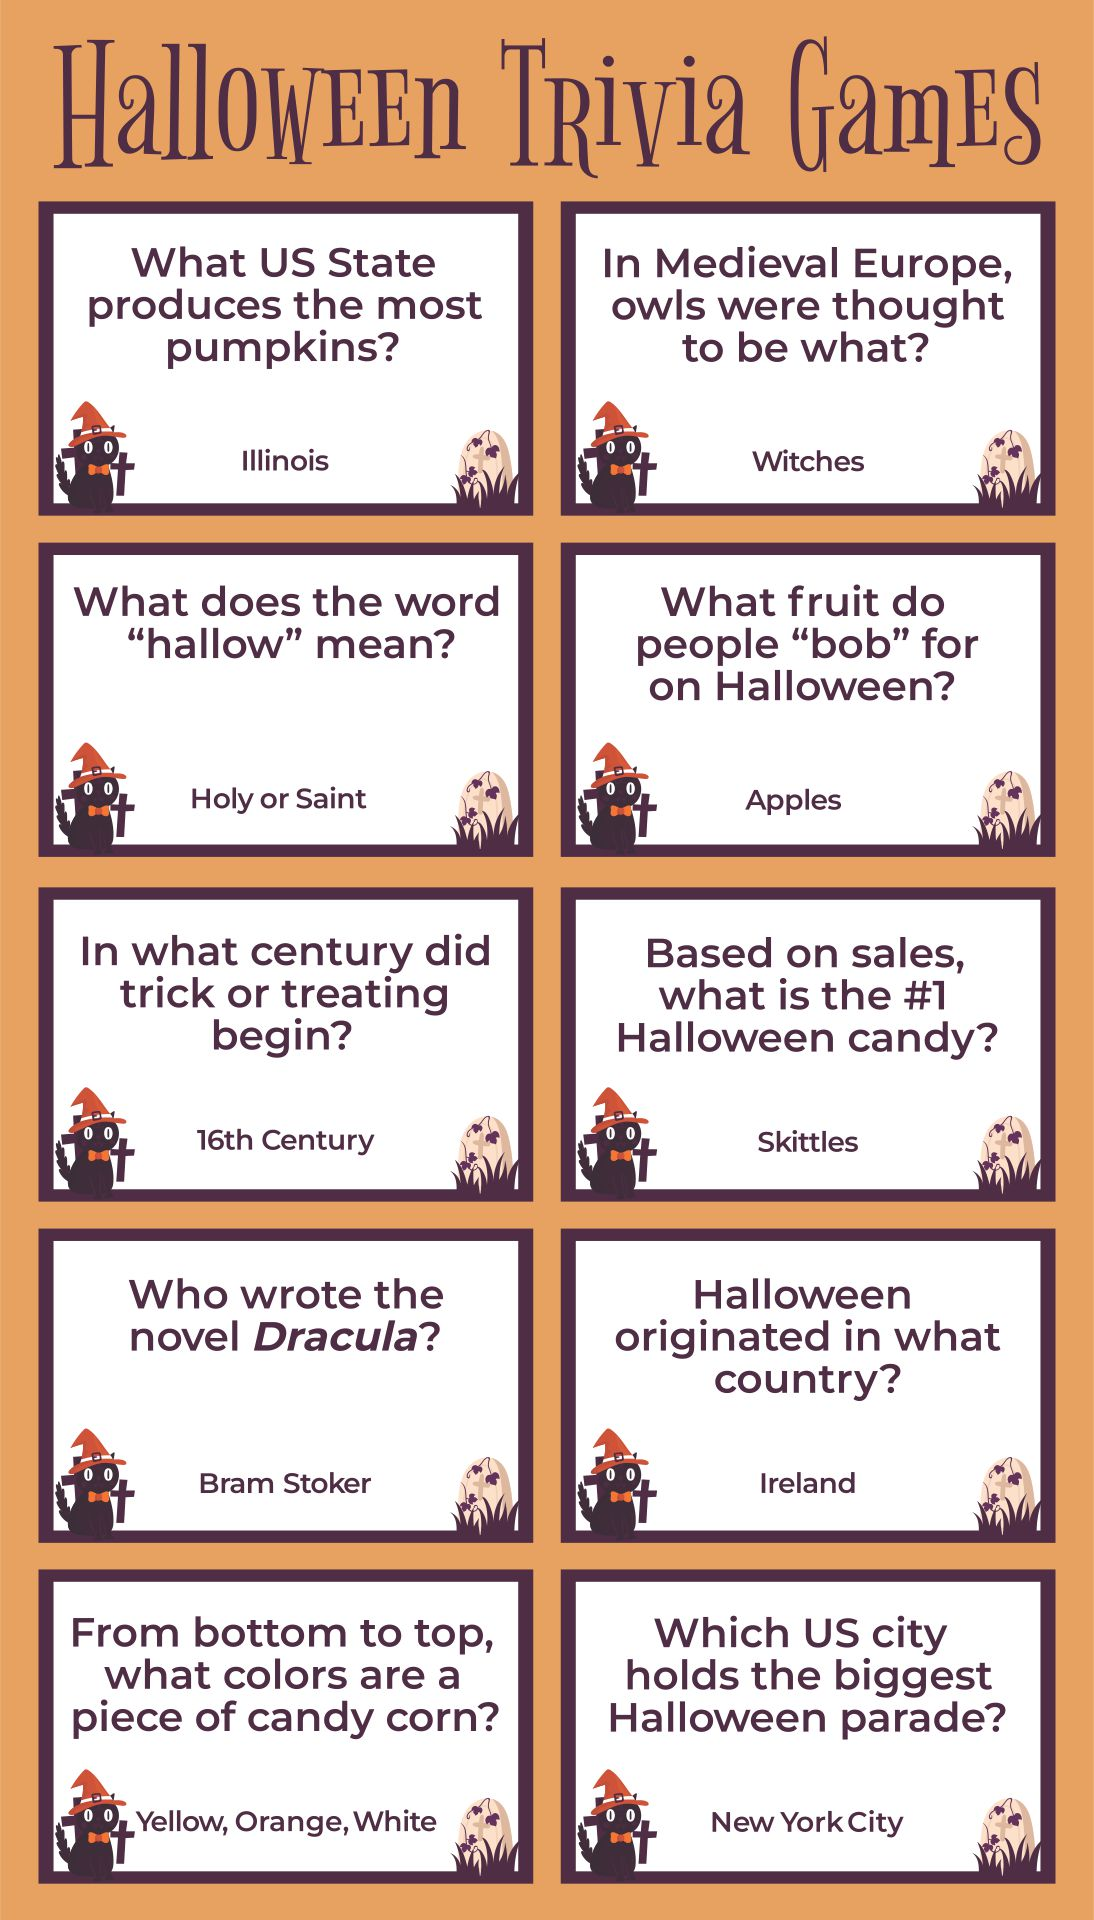 Halloween Trivia Questions and Answers